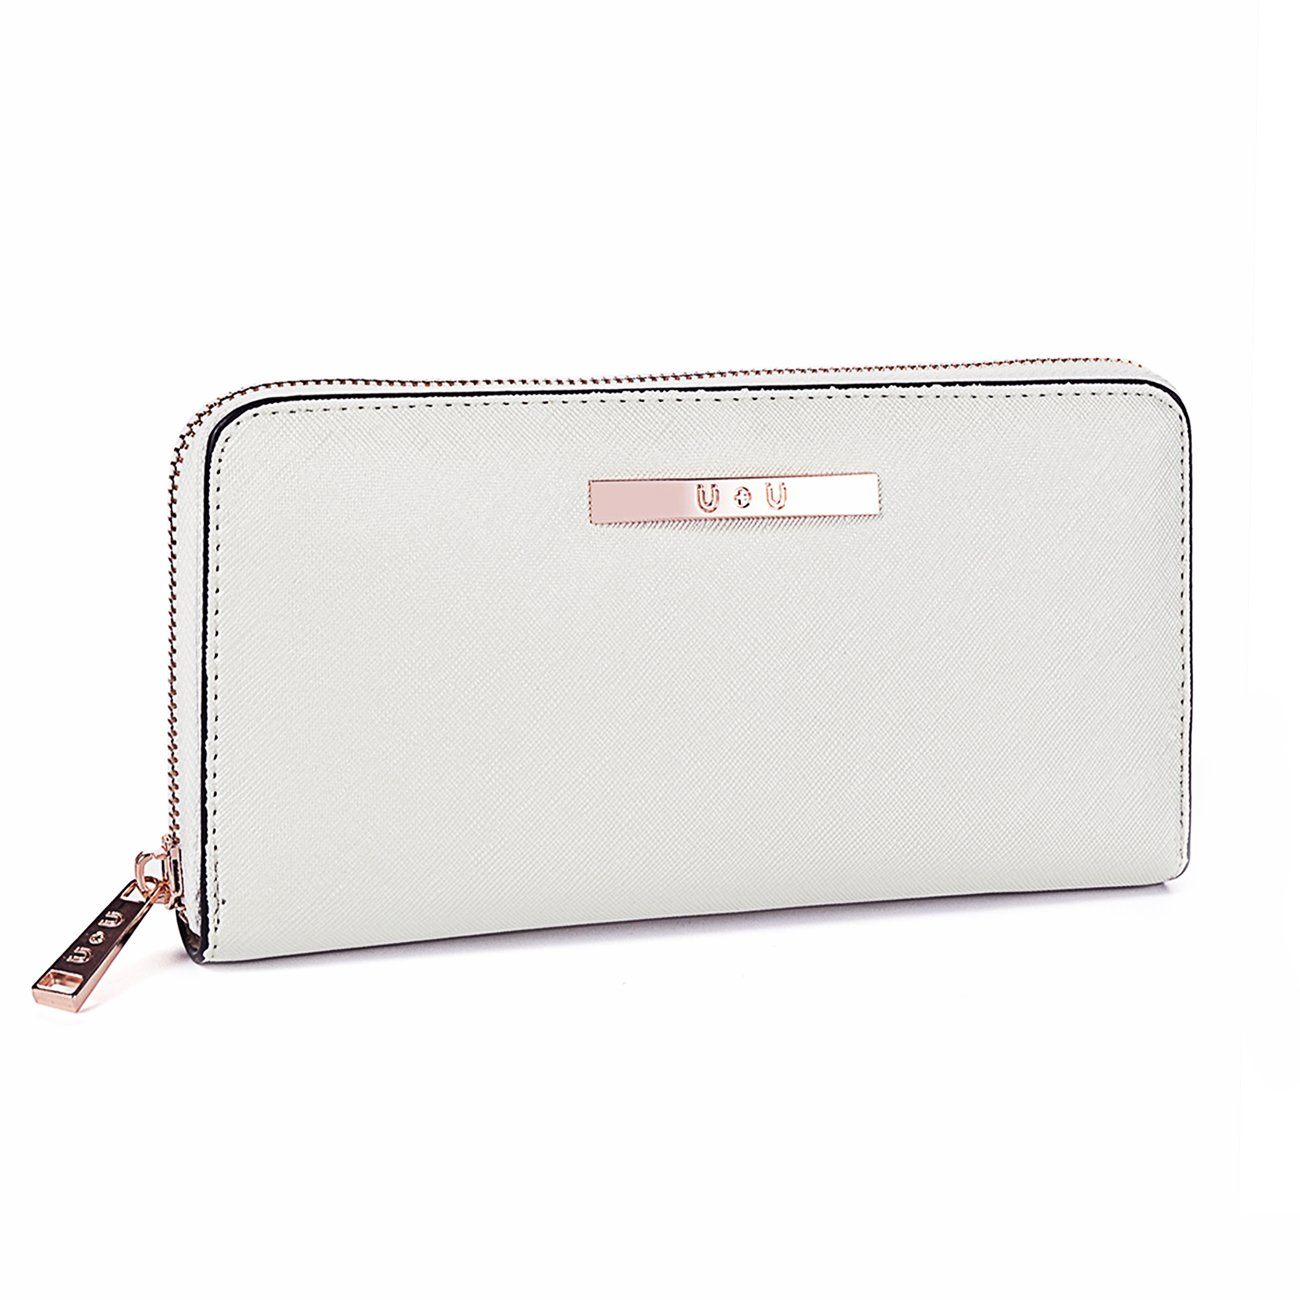 Womens Wallet Long Soft Leather Clutch Card Holder Zipper Purse(White)